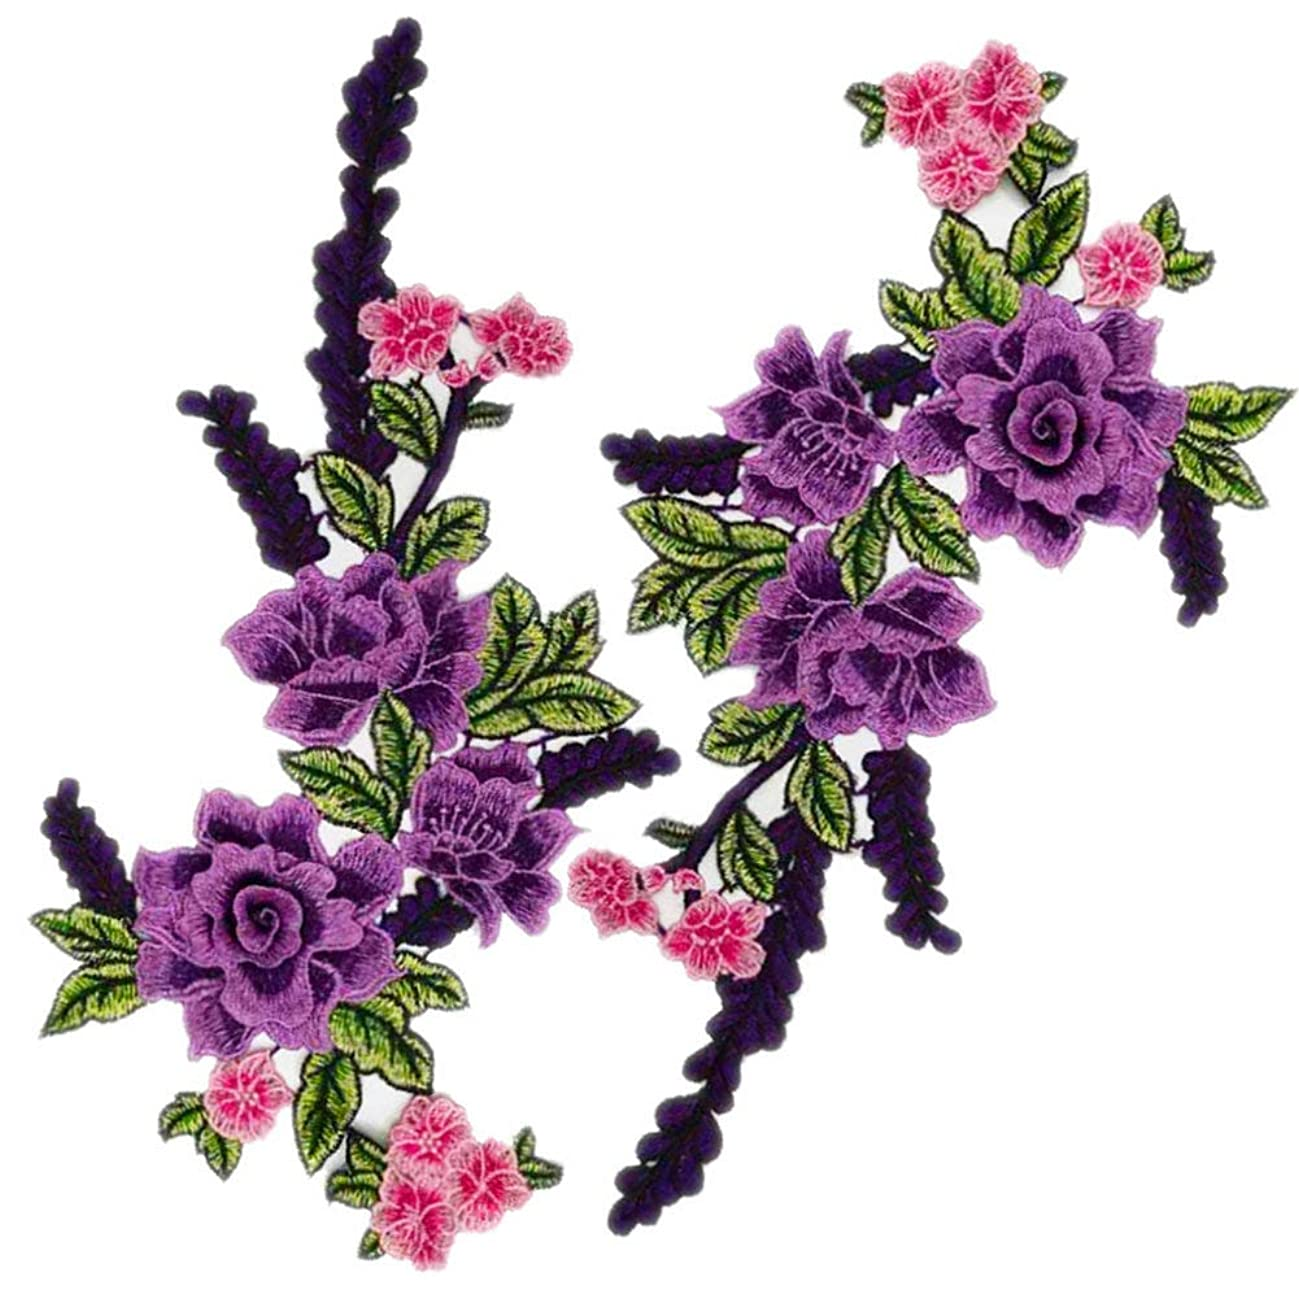 2Pcs 3D Floral Lace Embroidery Applique Flowers Lace Patches Cord Fabric Scrabooking Patch Sewing for Dress Decorated Craft (Purple)